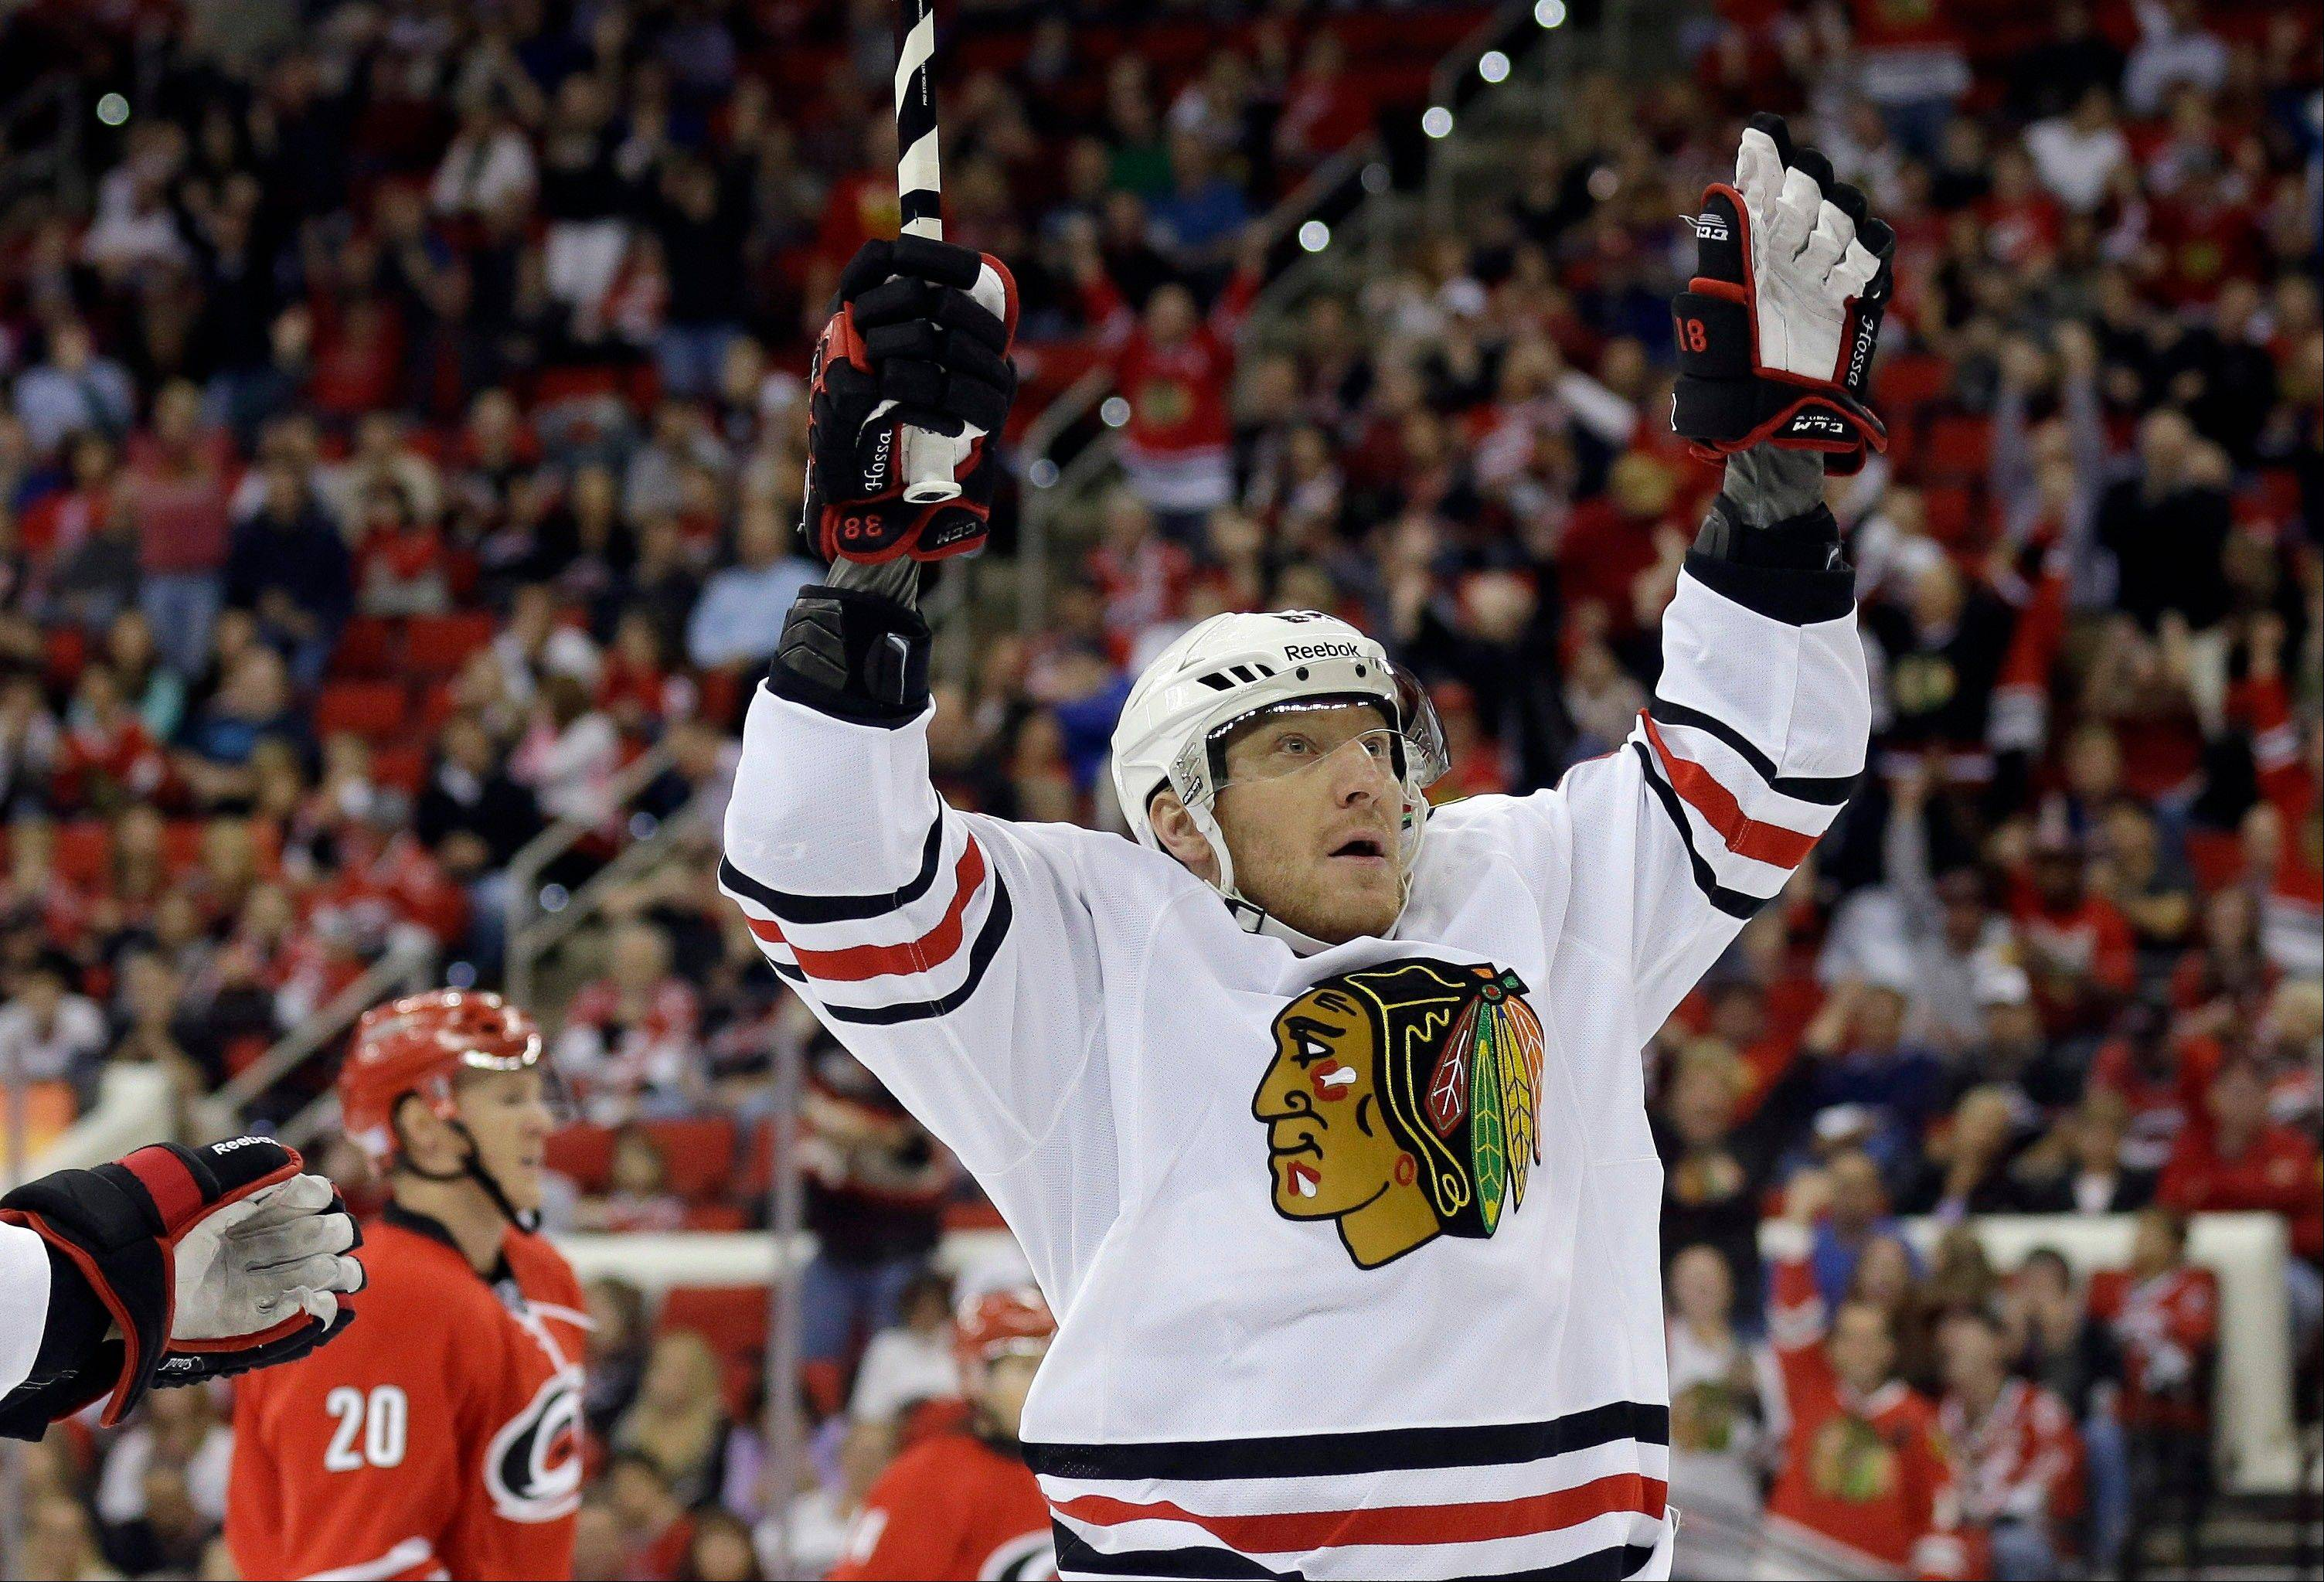 Marian Hossa celebrates after his goal in Tuesday's victory over the Carolina Hurricanes.